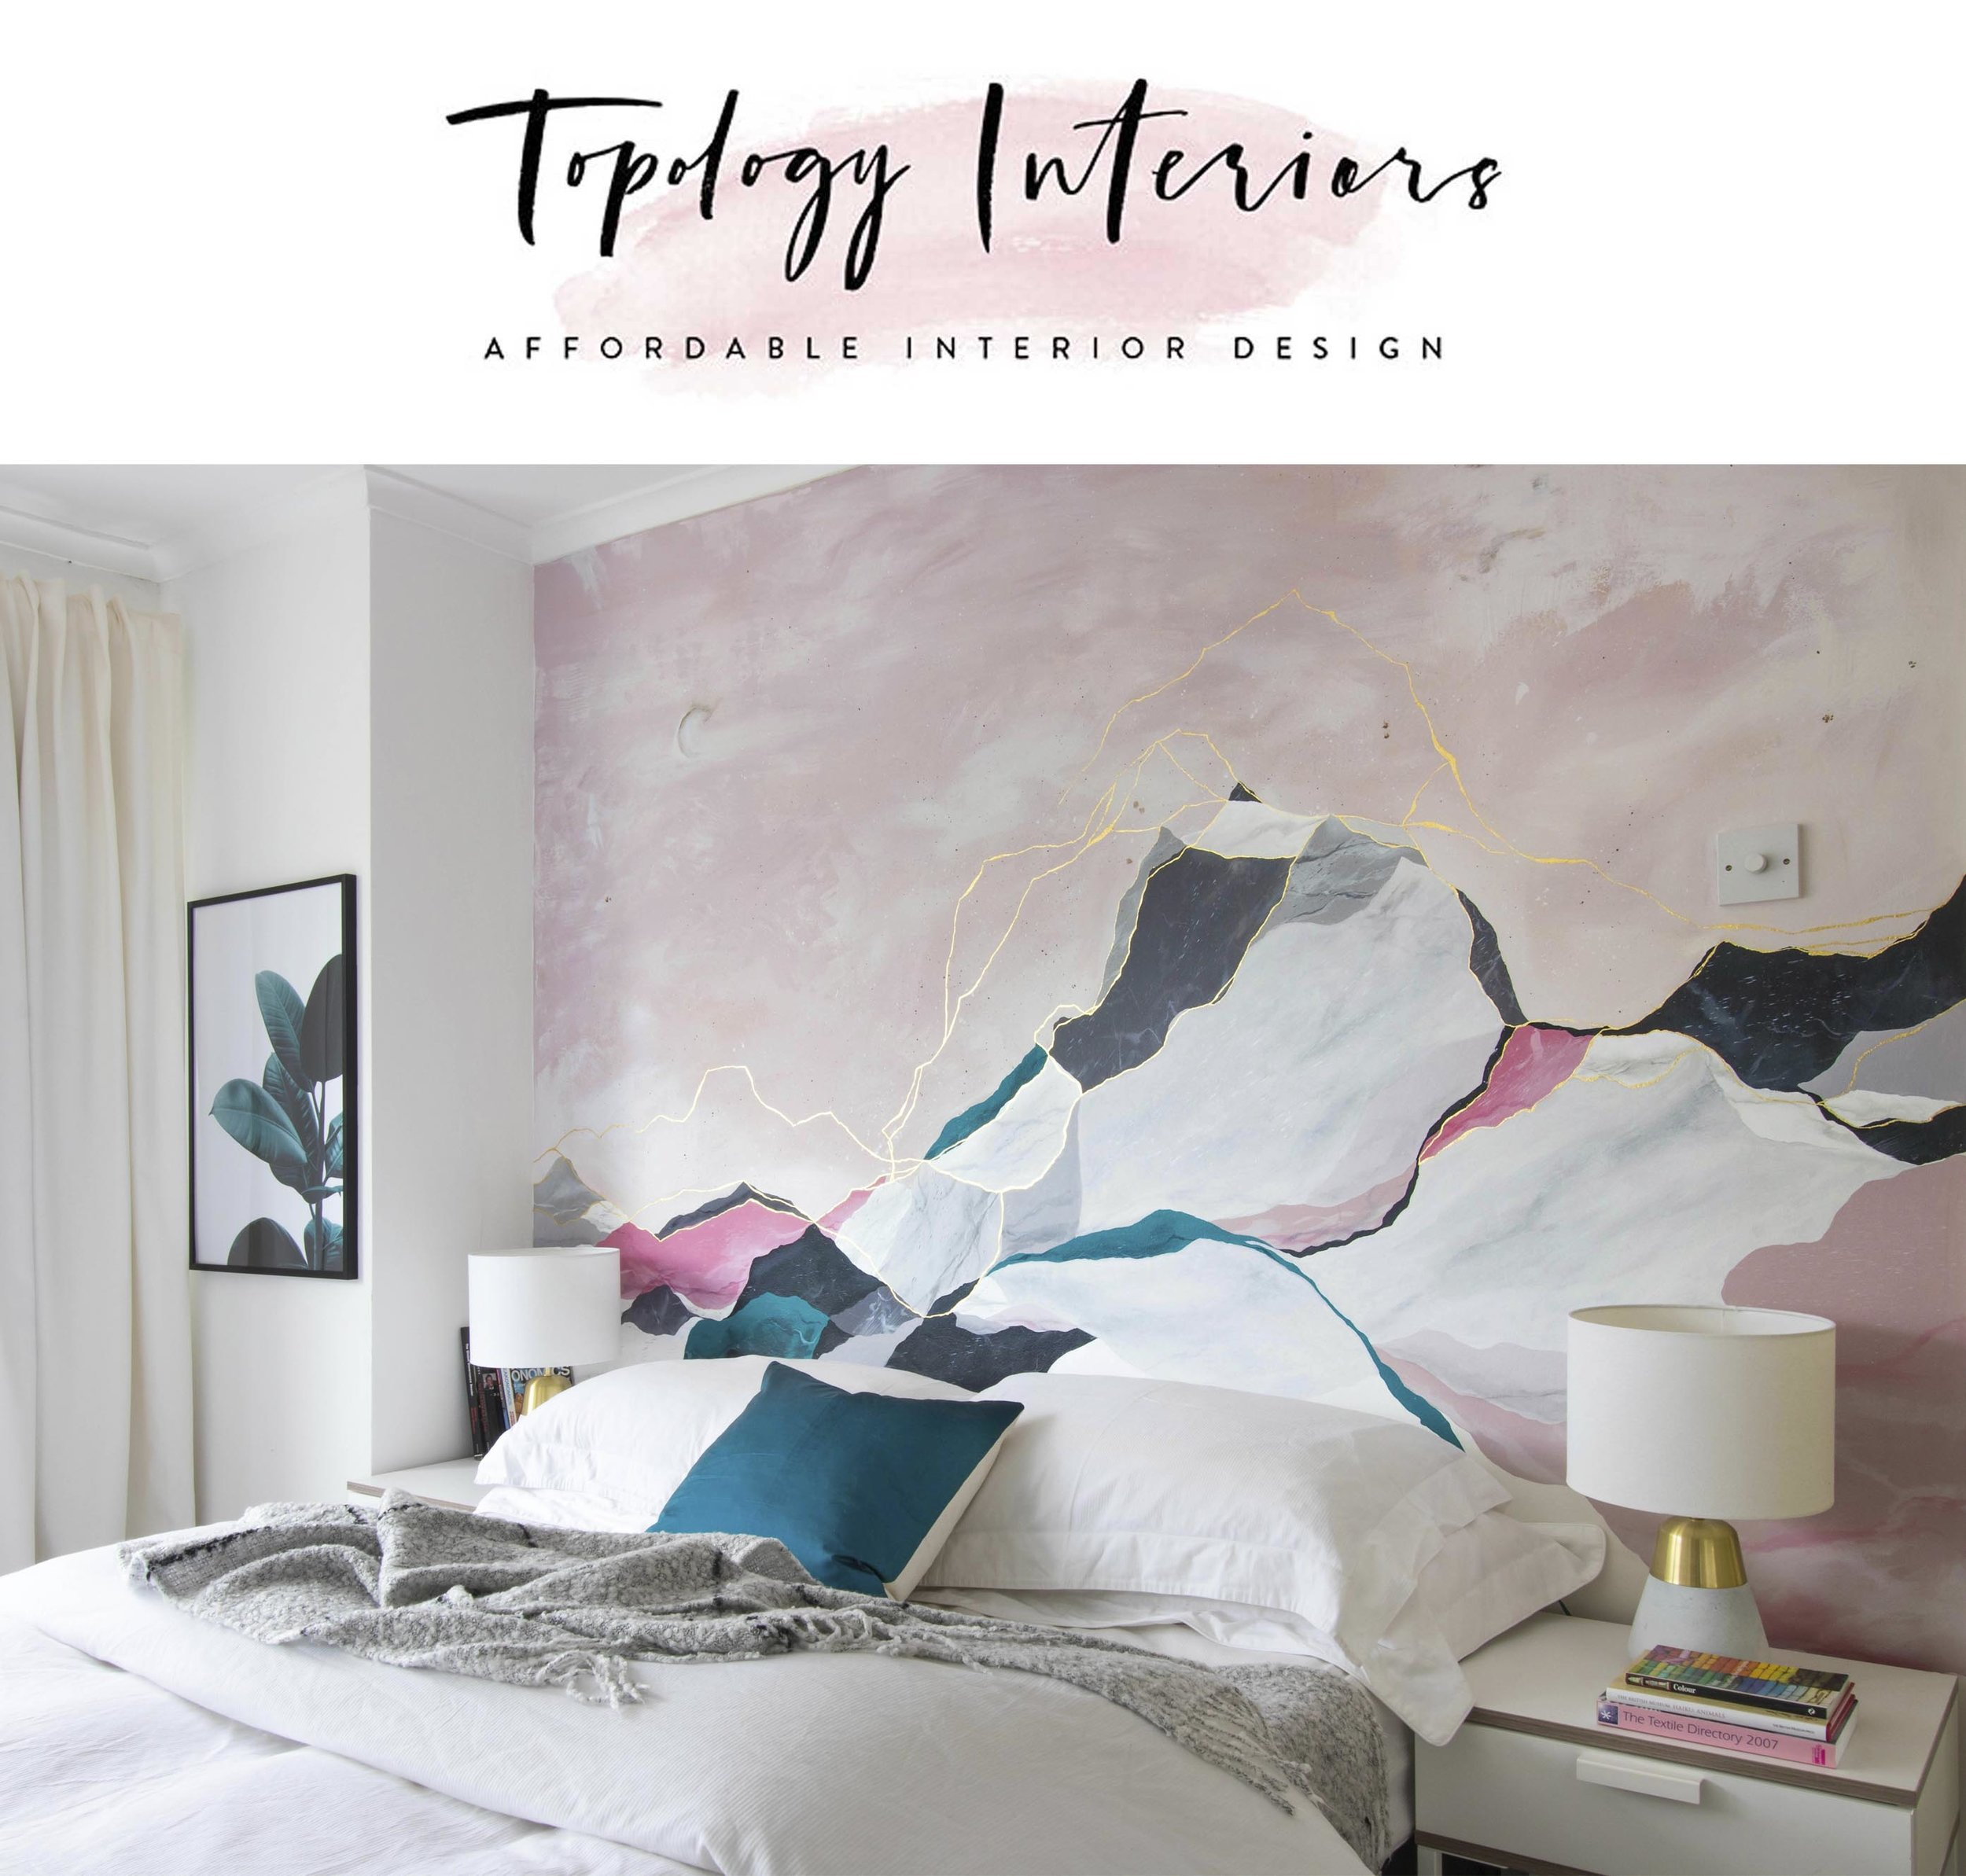 Topology - Diane Hill Bedroom Tour, May 2017